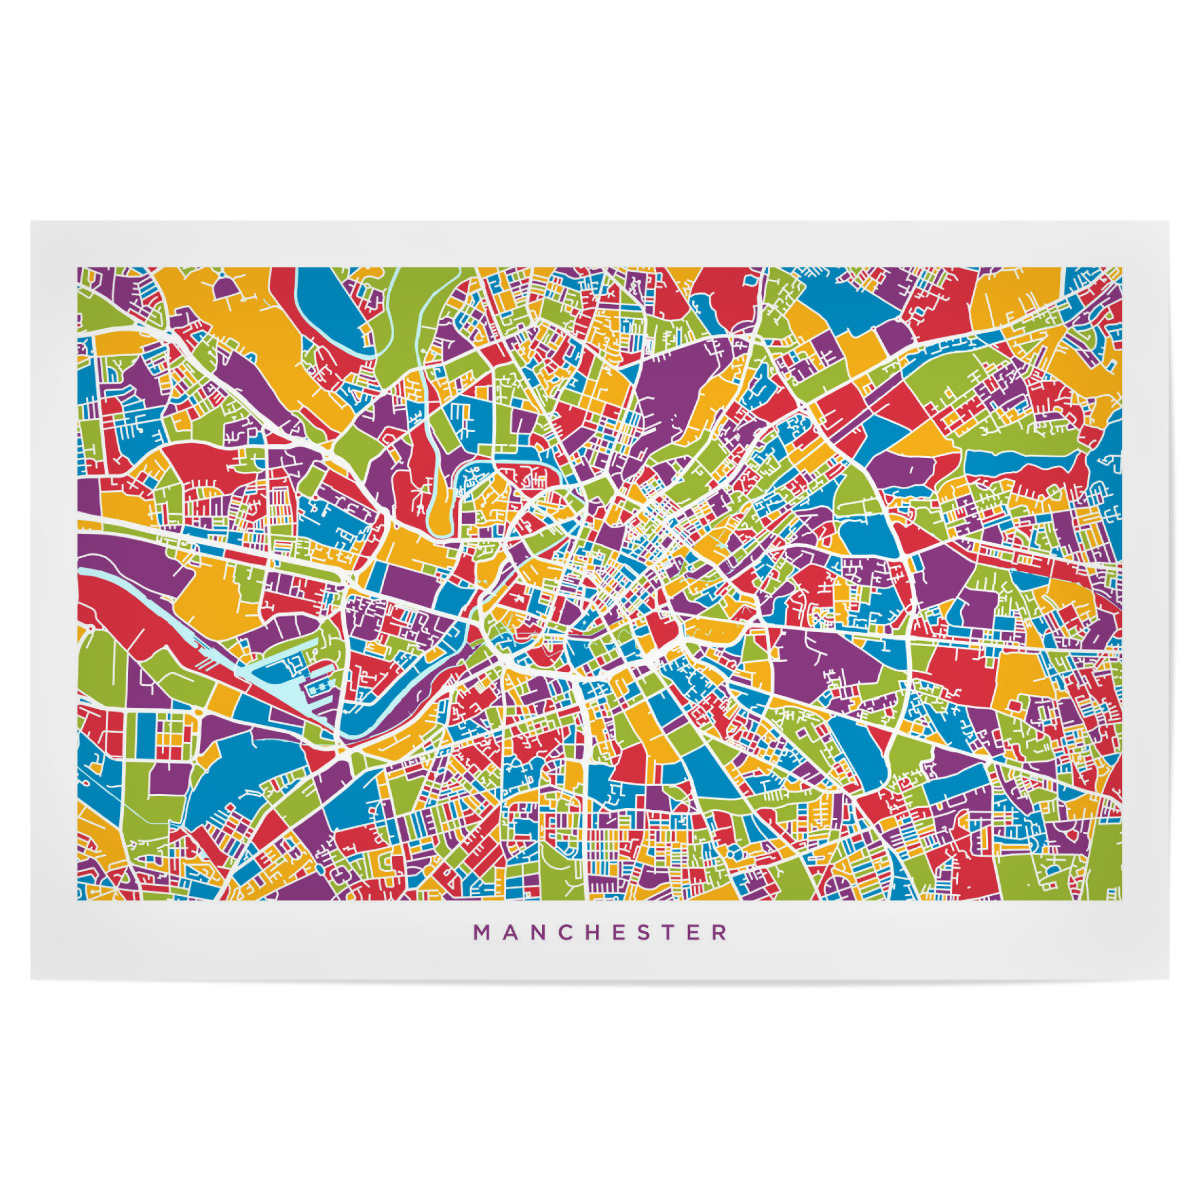 Map Of England Poster.Purchase The Manchester England Street Map As A Poster At Artboxone